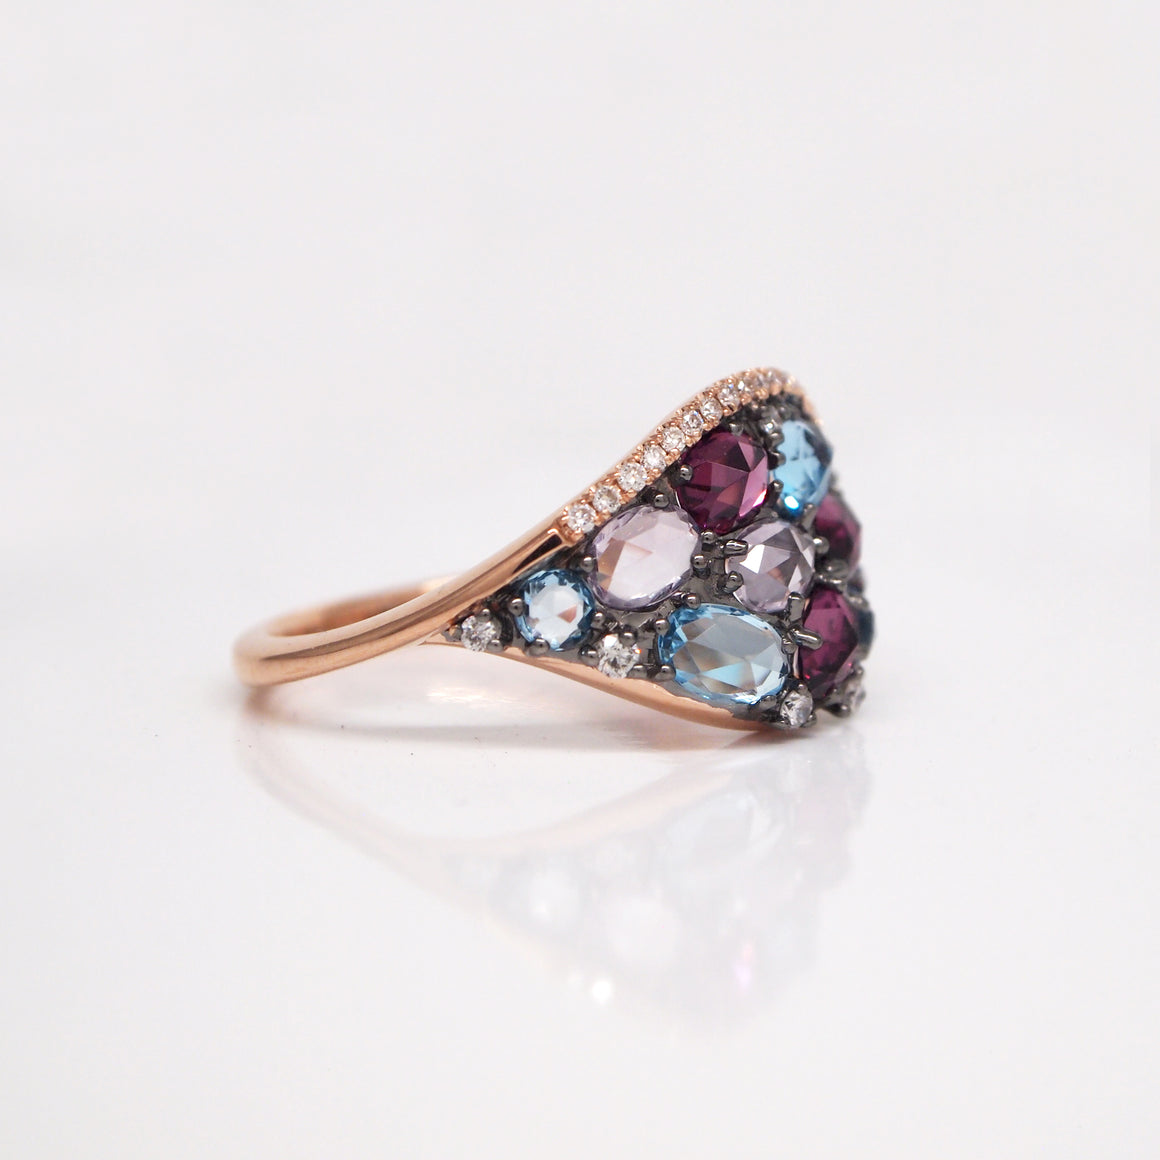 14K Rose Gold Amethyst, Rhodolite, Topaz, and Diamond Ring